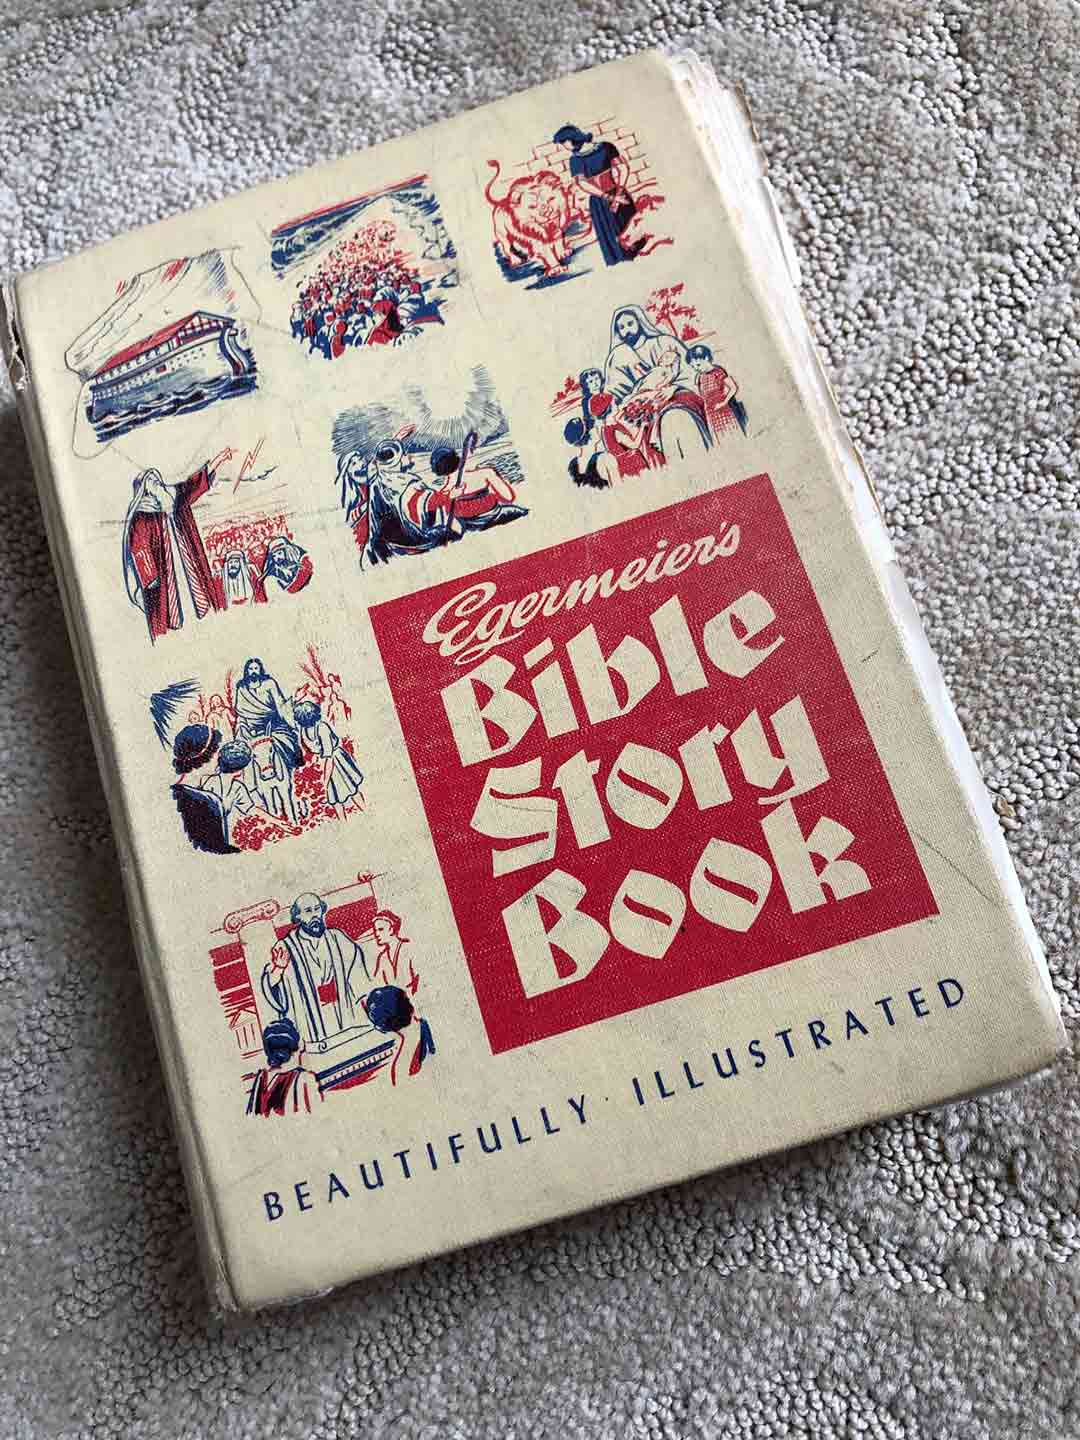 The Egermeier's Bible Story Book that Tim Mahoney's mother would read to him before bedtime